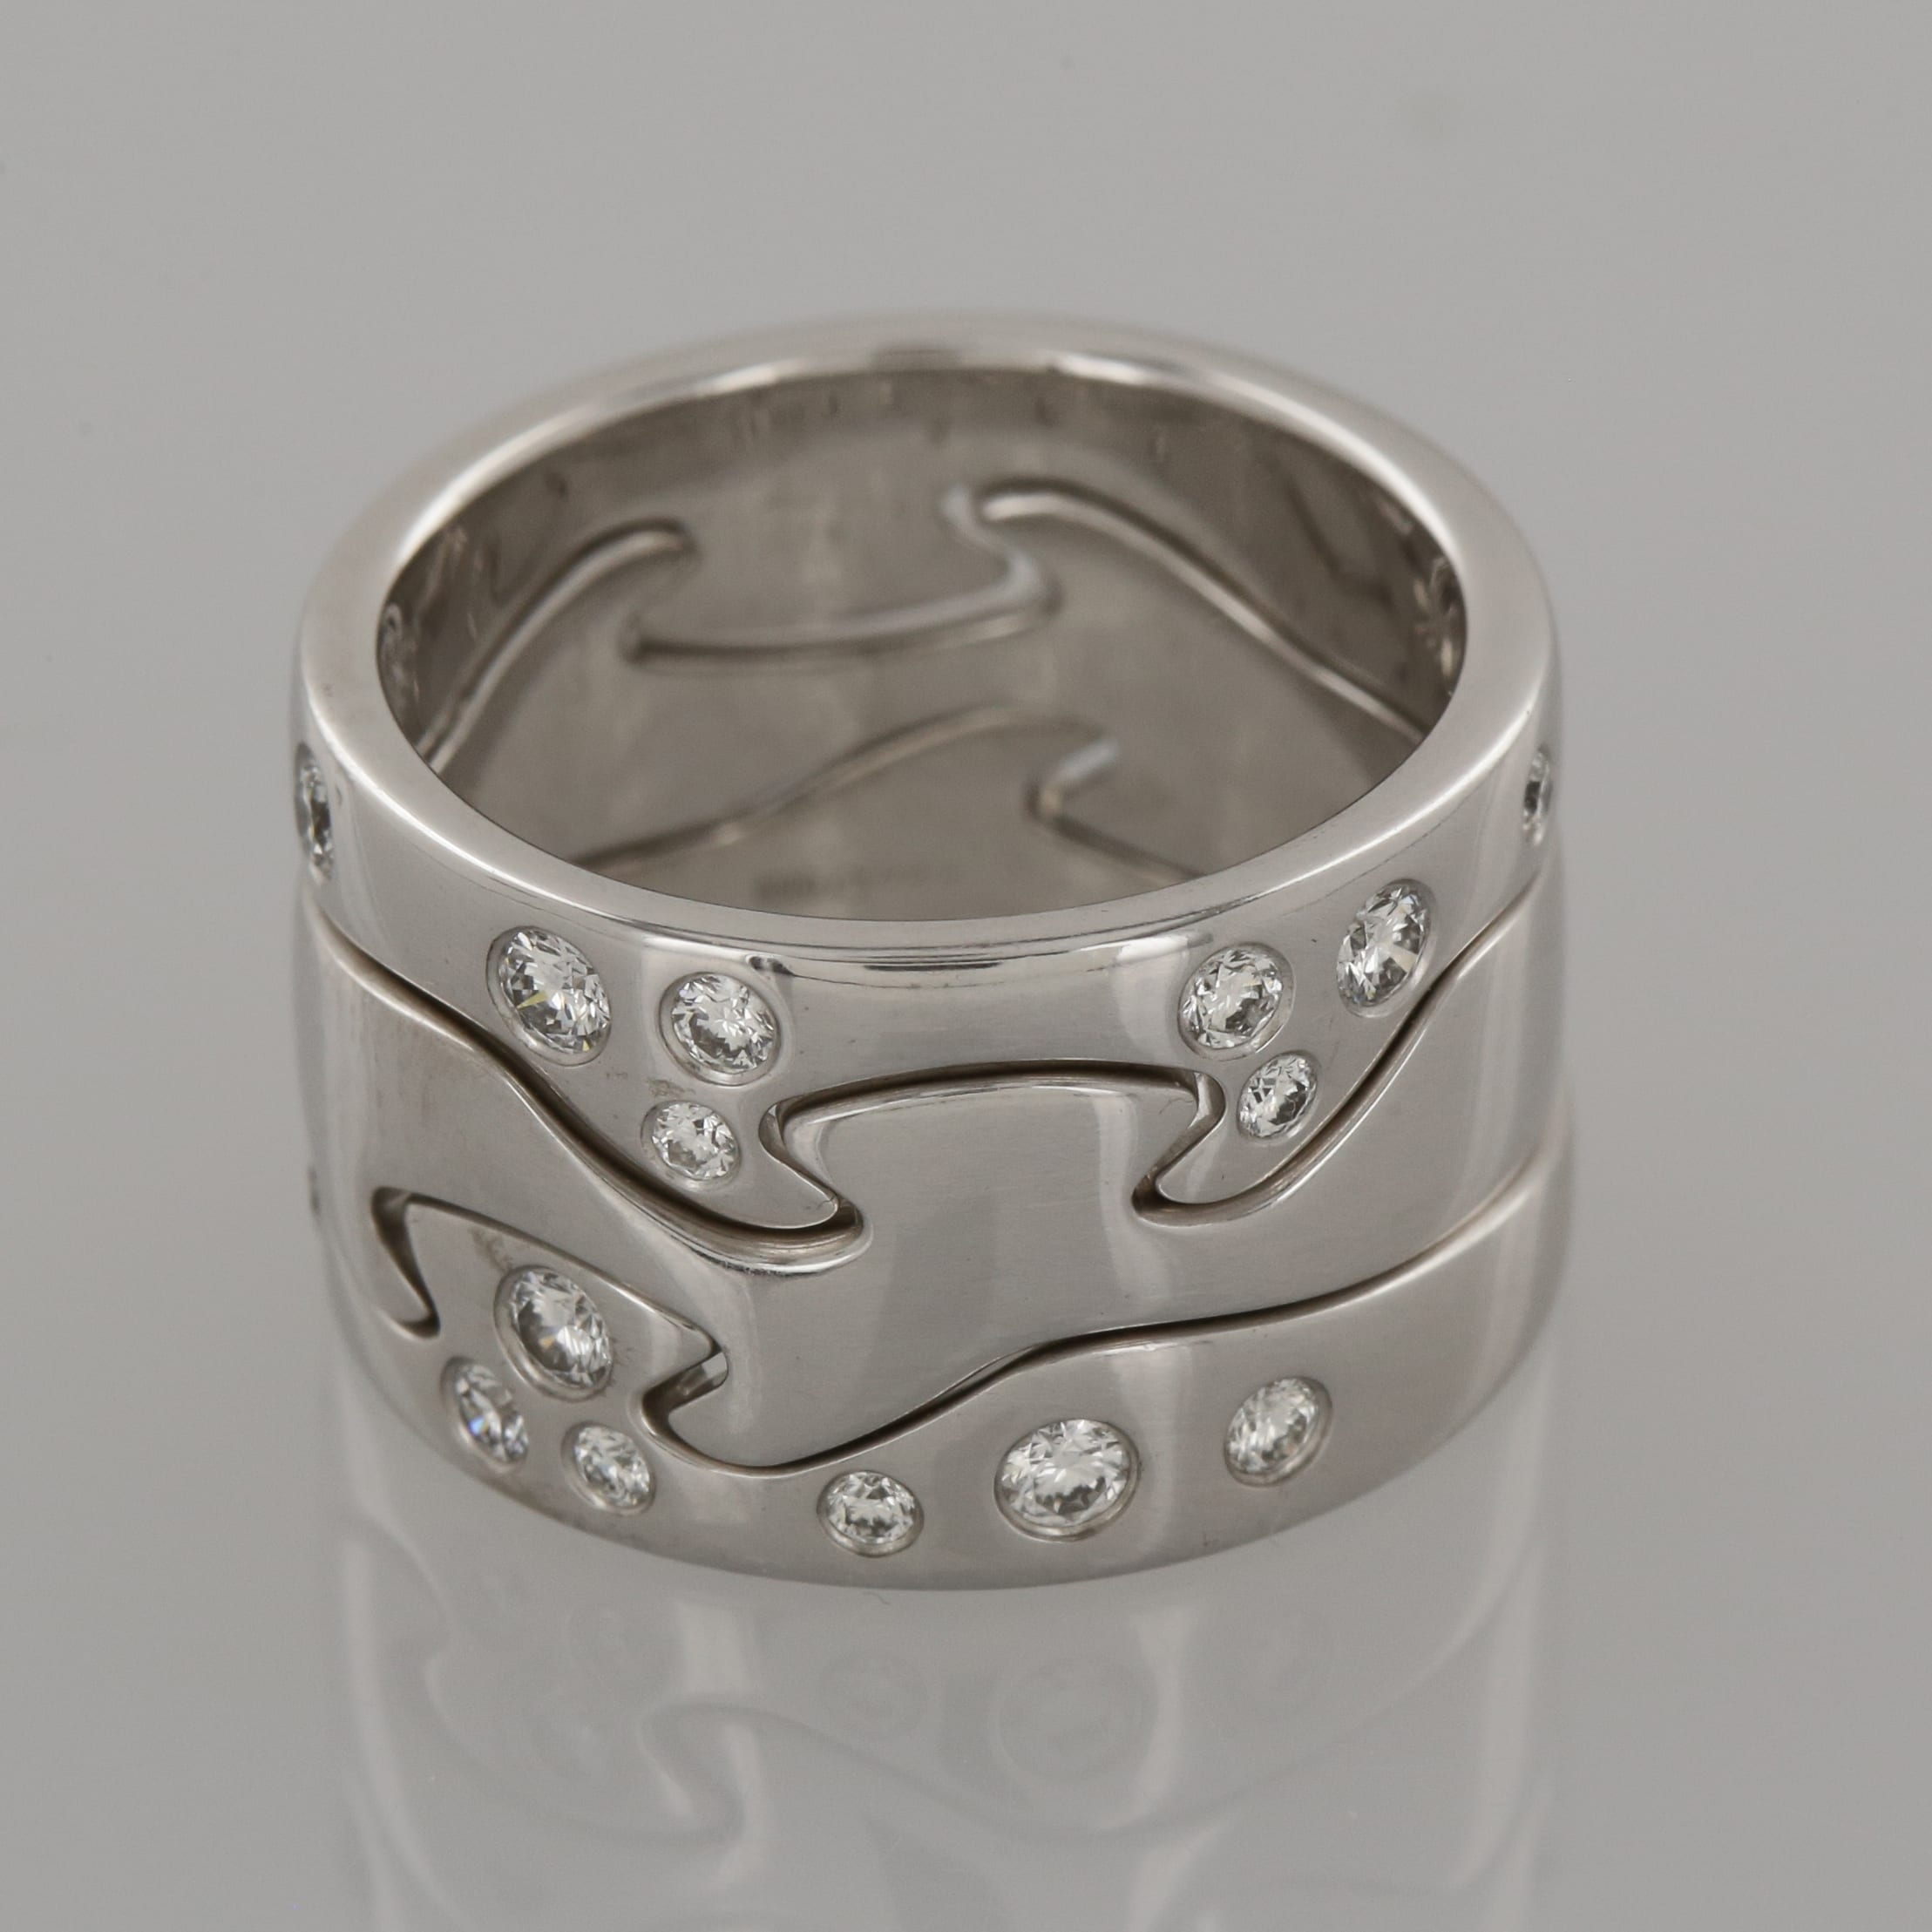 Georg Jensen Fusion Three Piece Diamond Ring The Vintage Jeweller